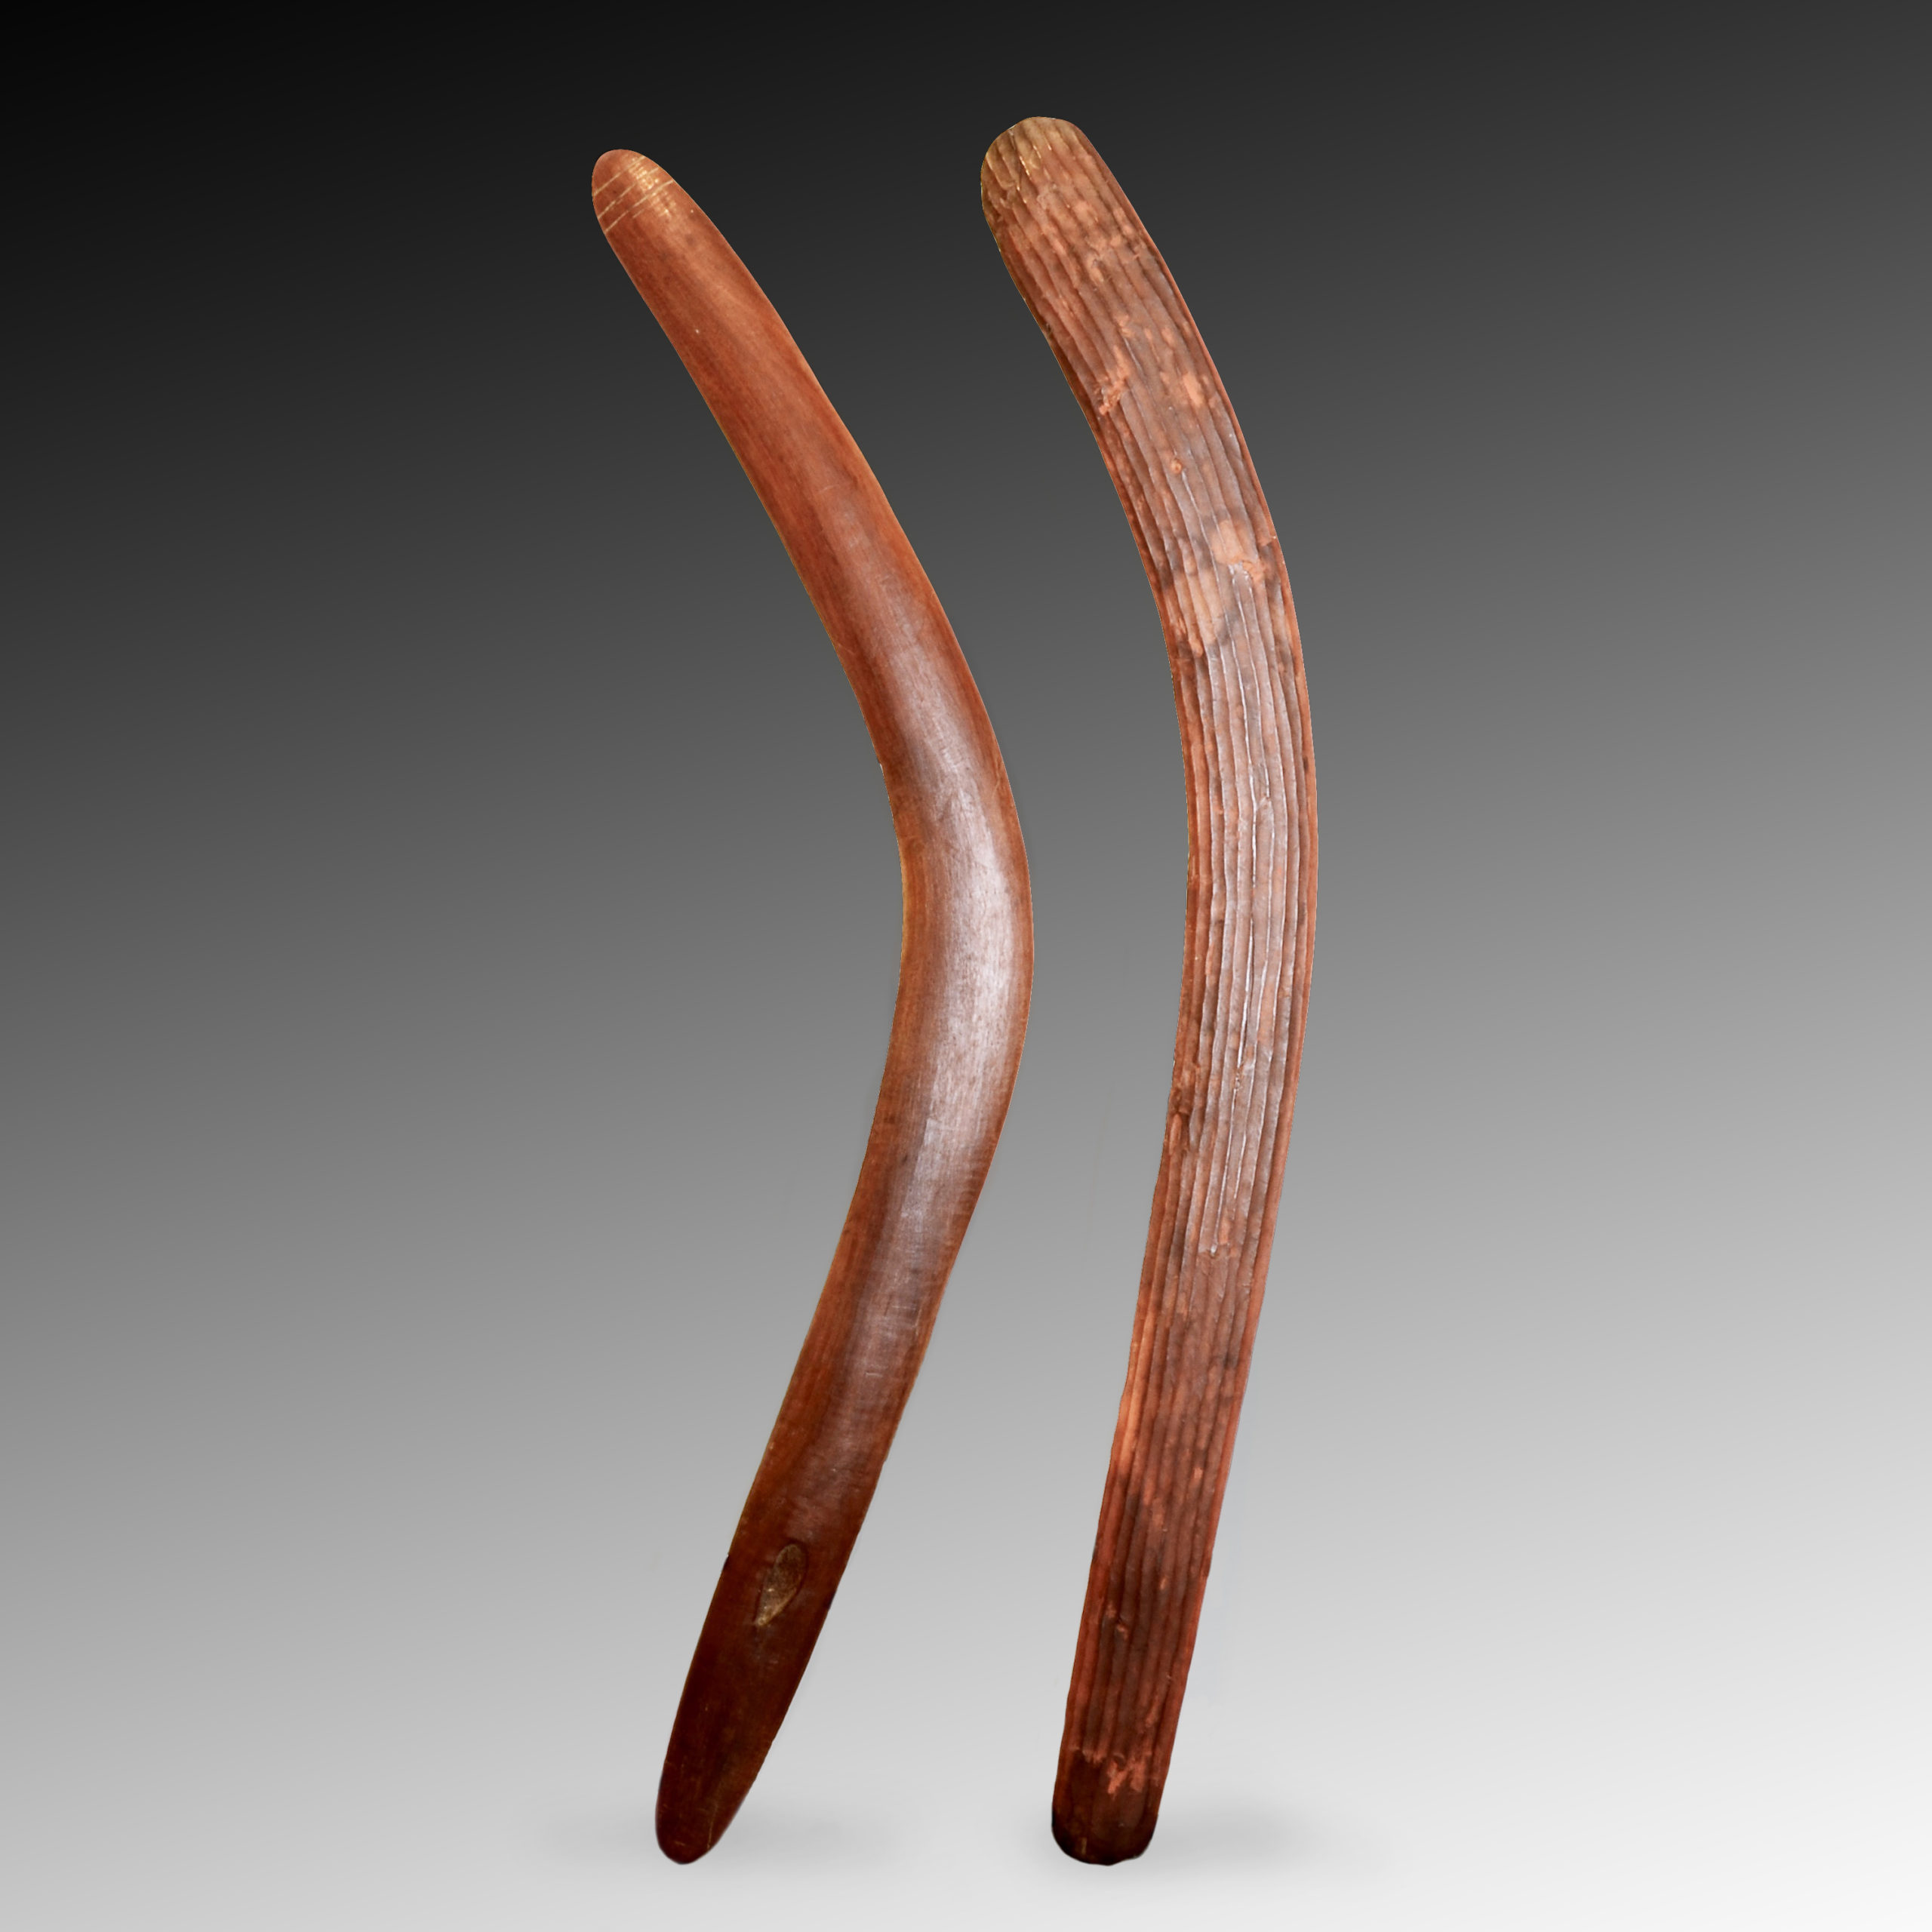 Two Aboriginal boomerangs.